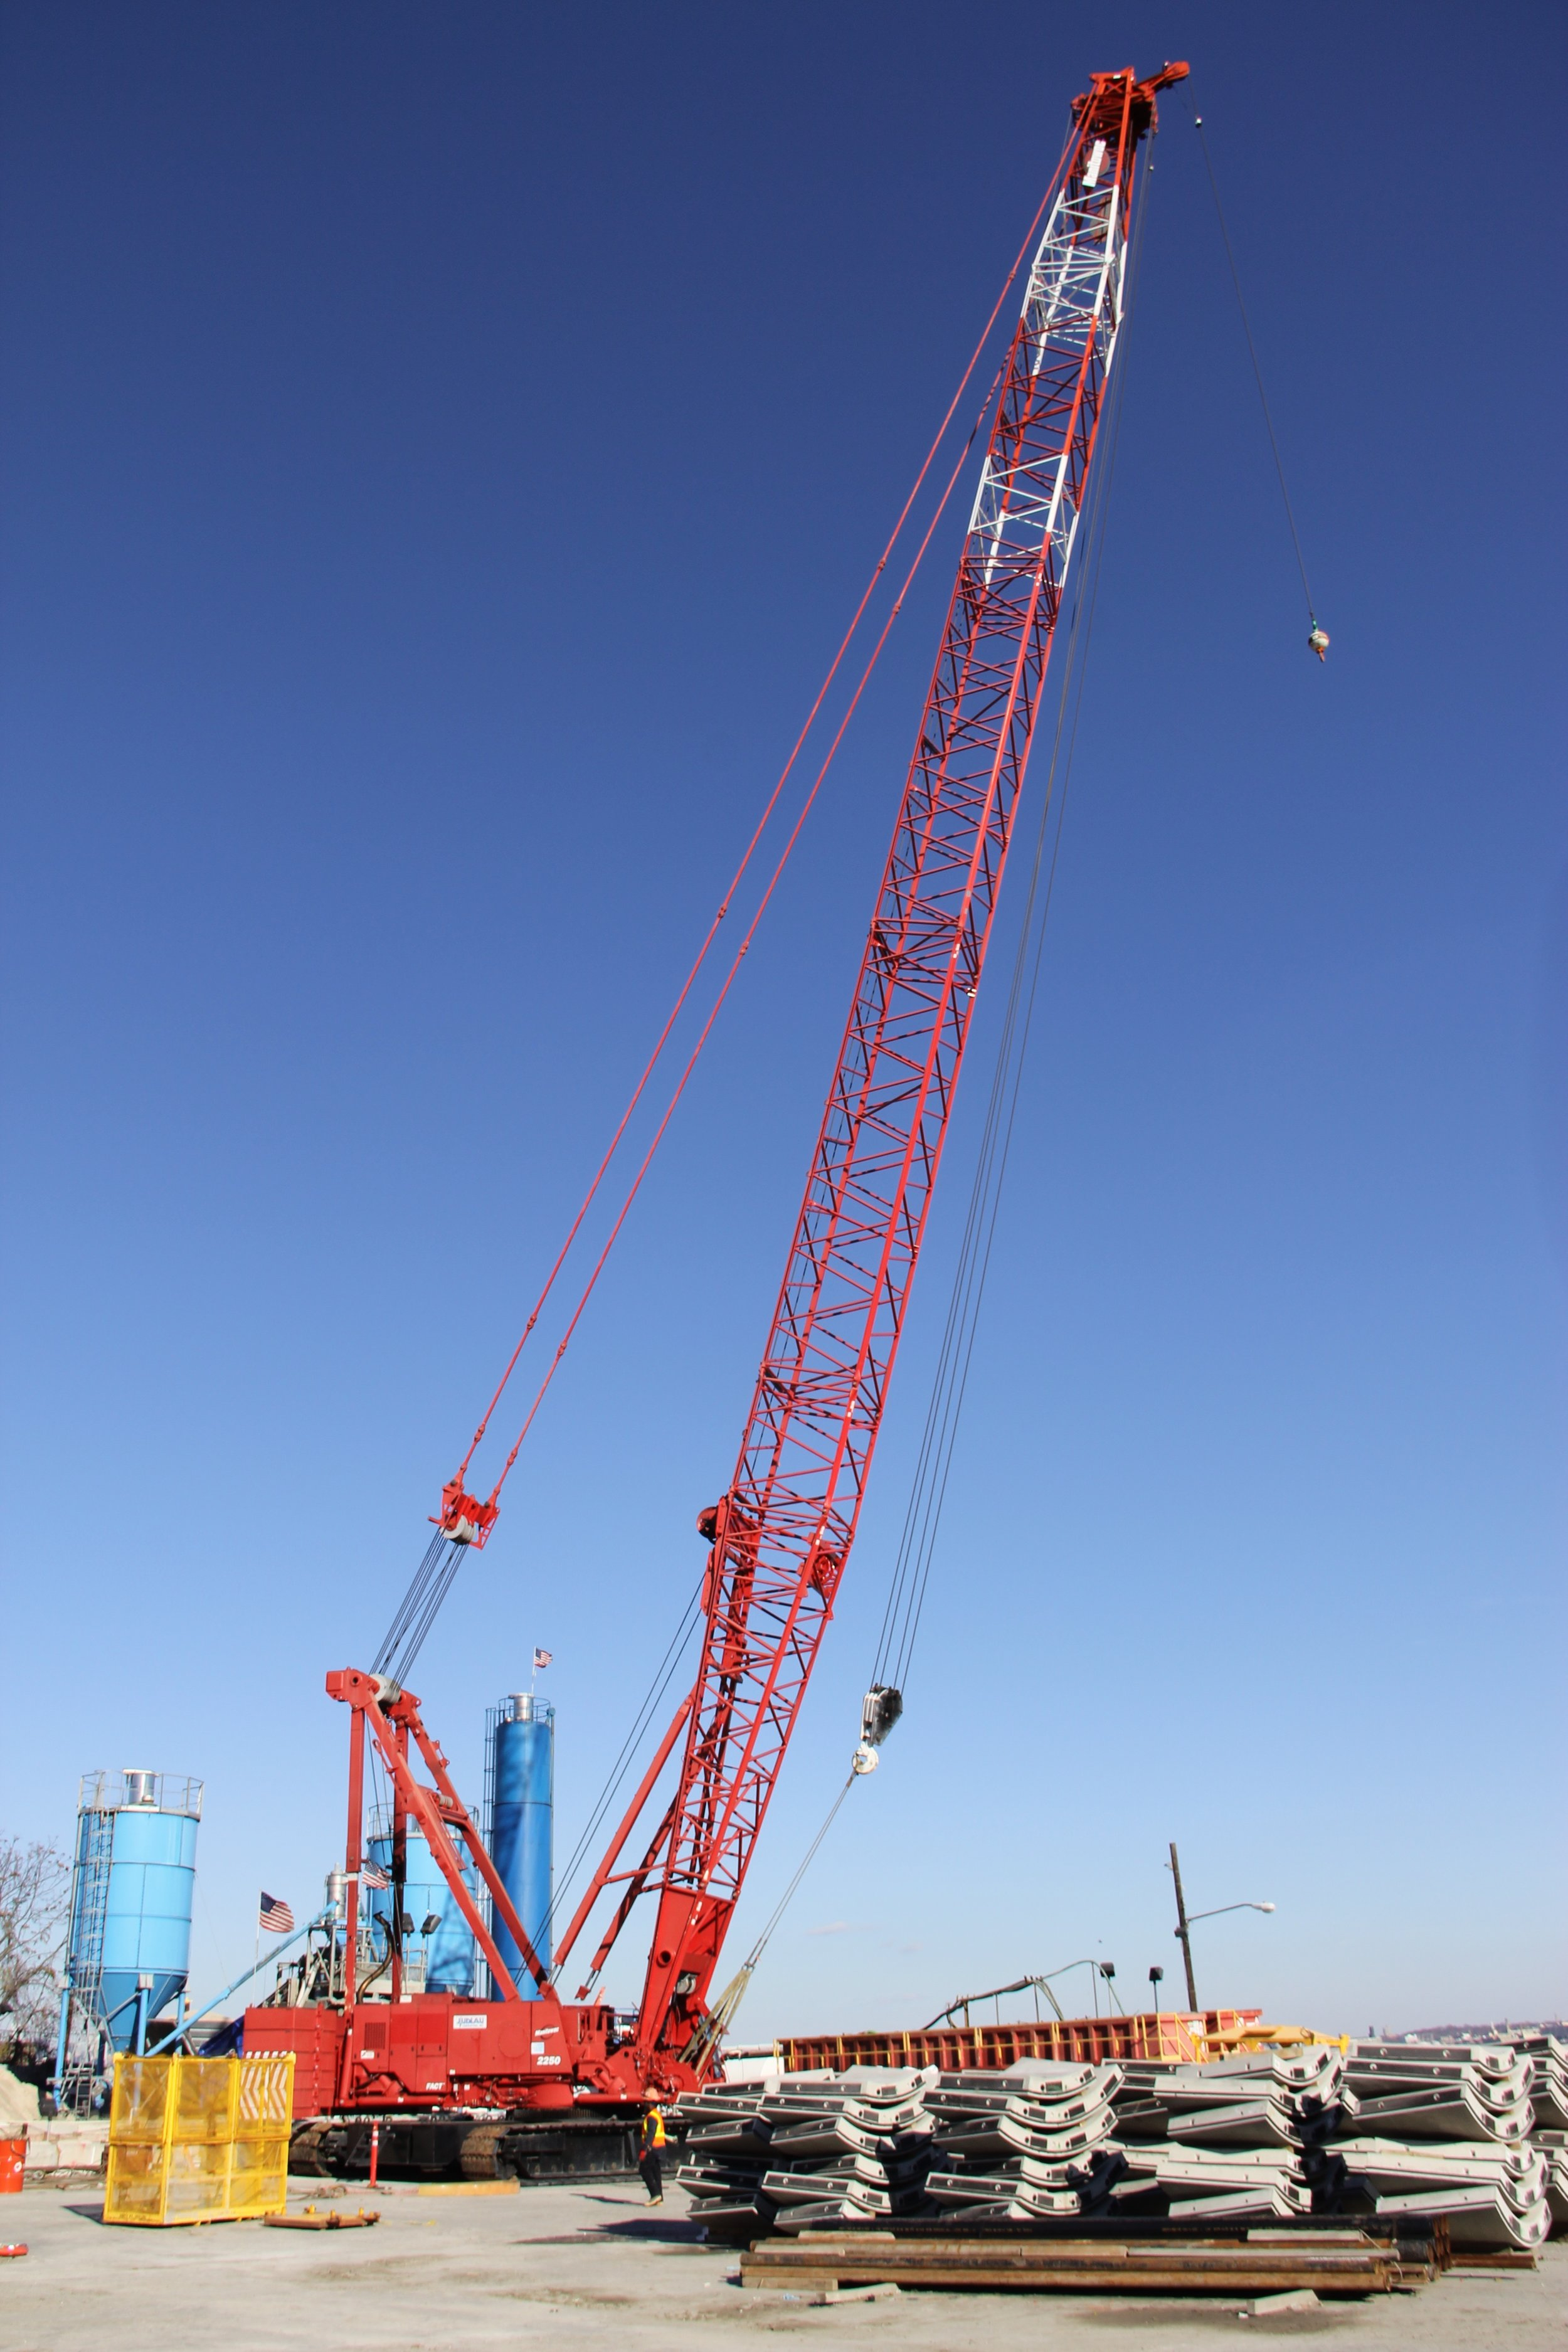 Crane rentals - Cranes available for Rent